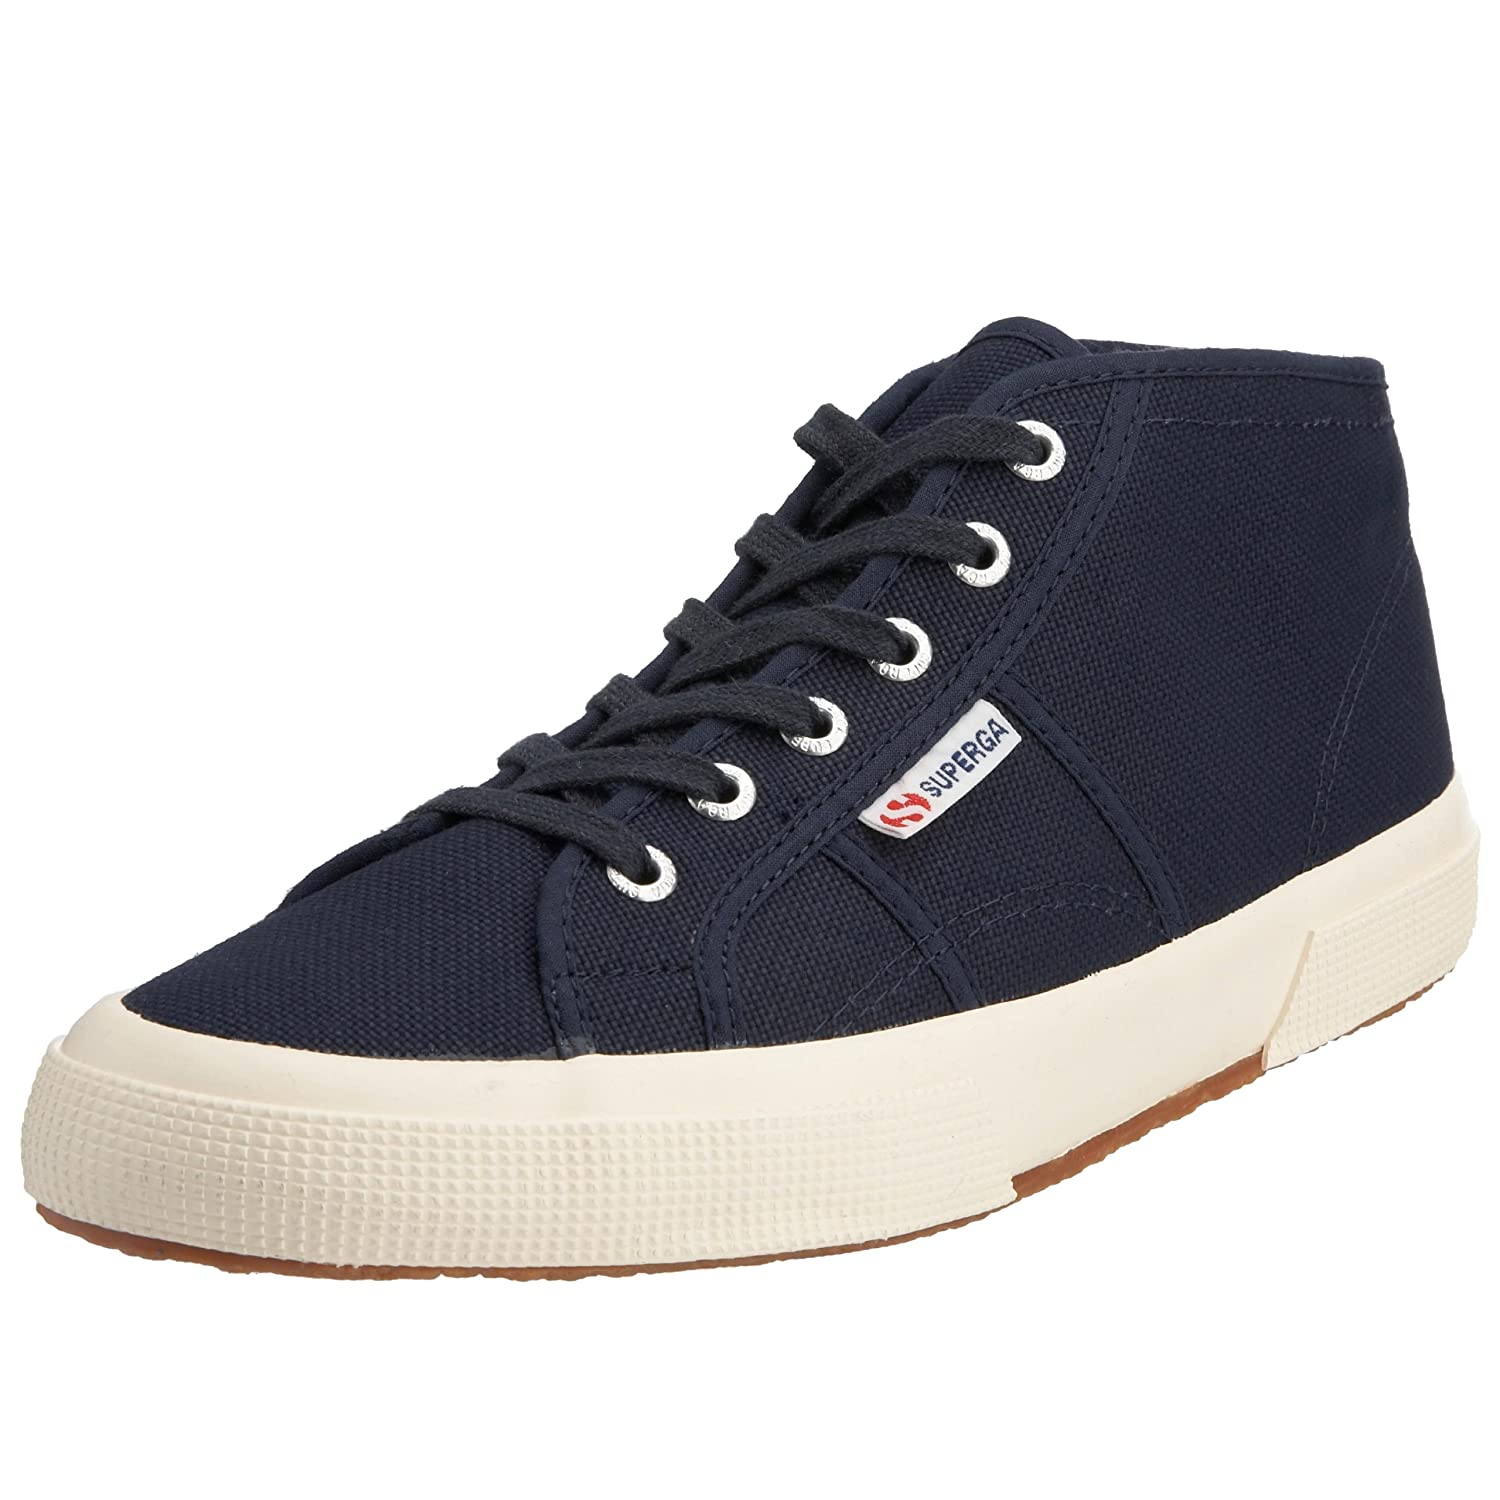 Tg. 44 EU / 9.5 UK Superga 2754 Cotu Sneakers Unisex Adulti Blu 933 44 EU